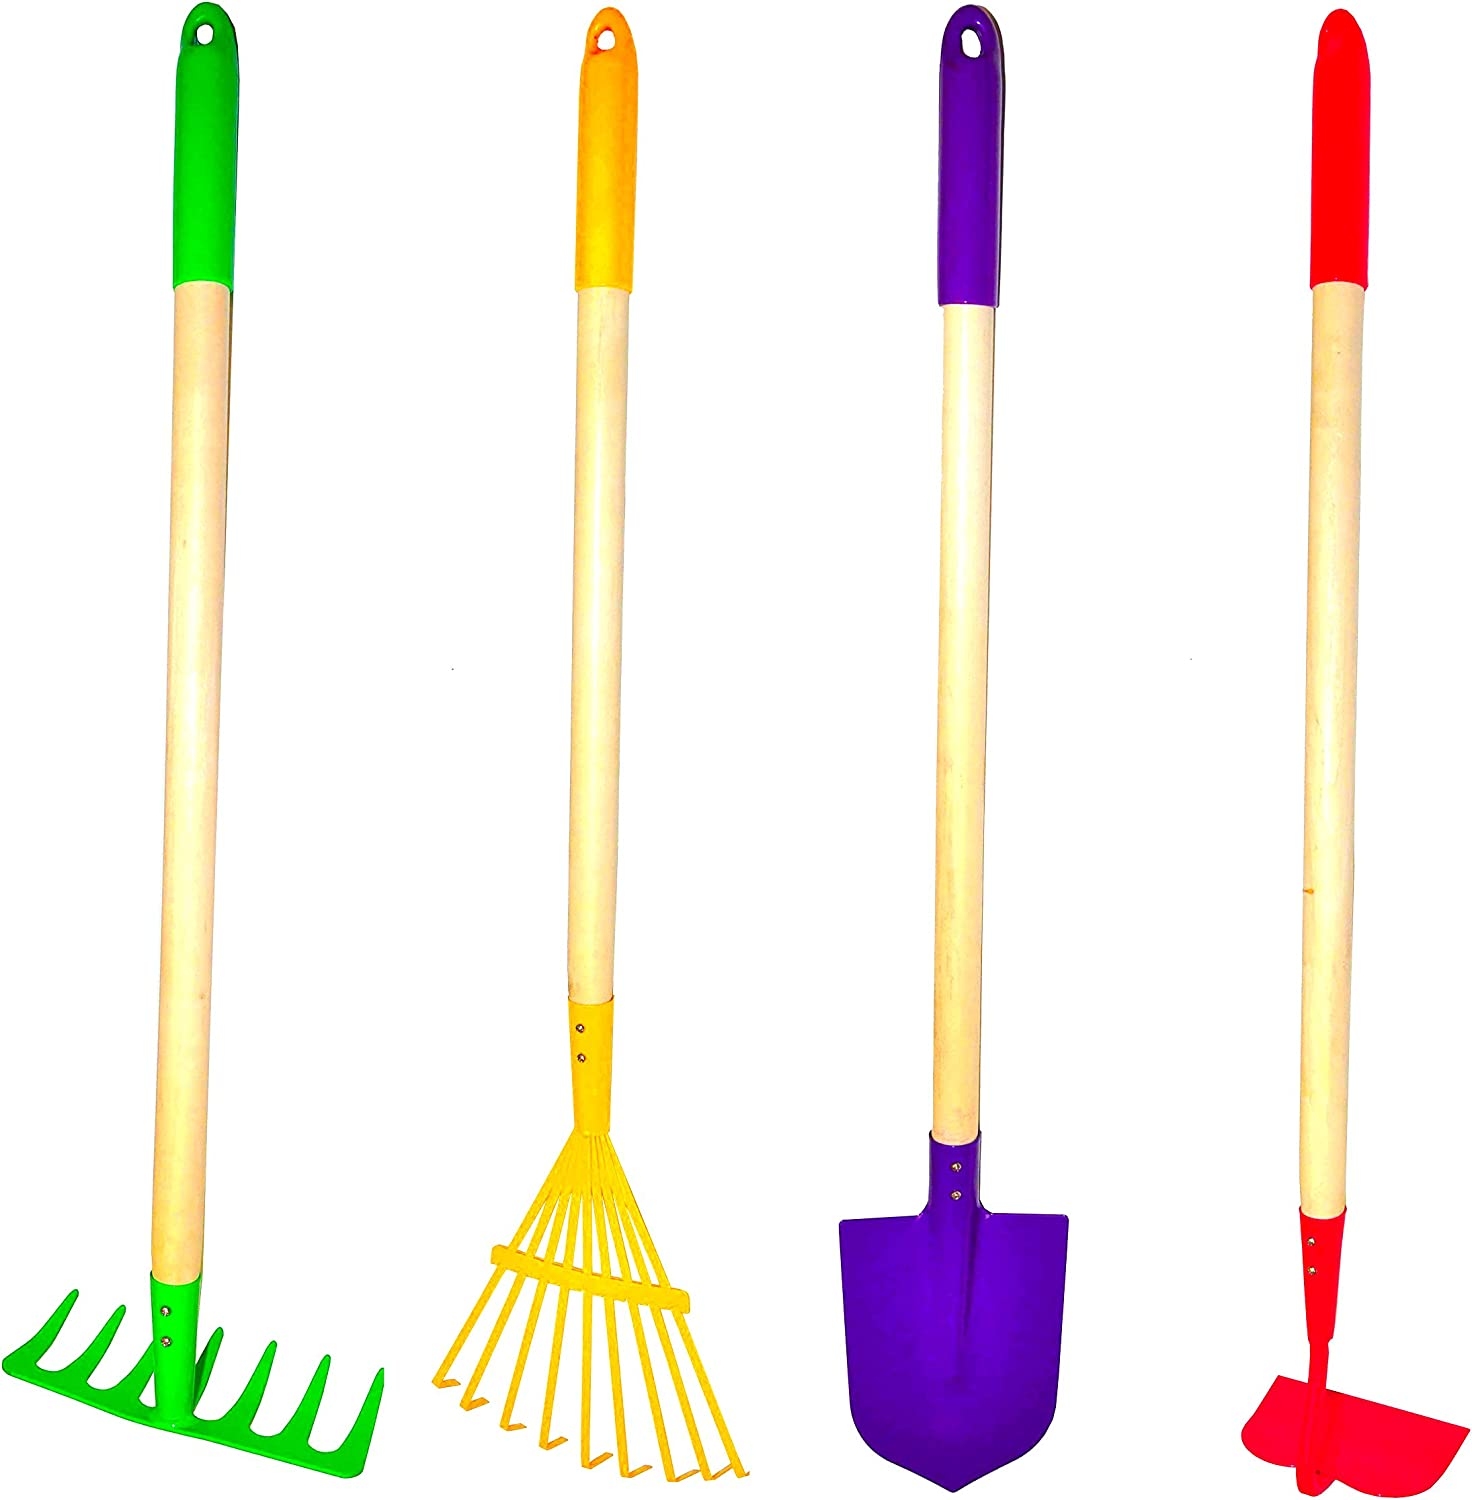 G & F JustForKids Kids Garden Tool Set Toy, Rake, Spade, Hoe and Leaf Rake, reduced size , made of sturdy steel heads and real wood handle, 4-Piece, Multicolored, 5yr+ : Tools & Home Improvement